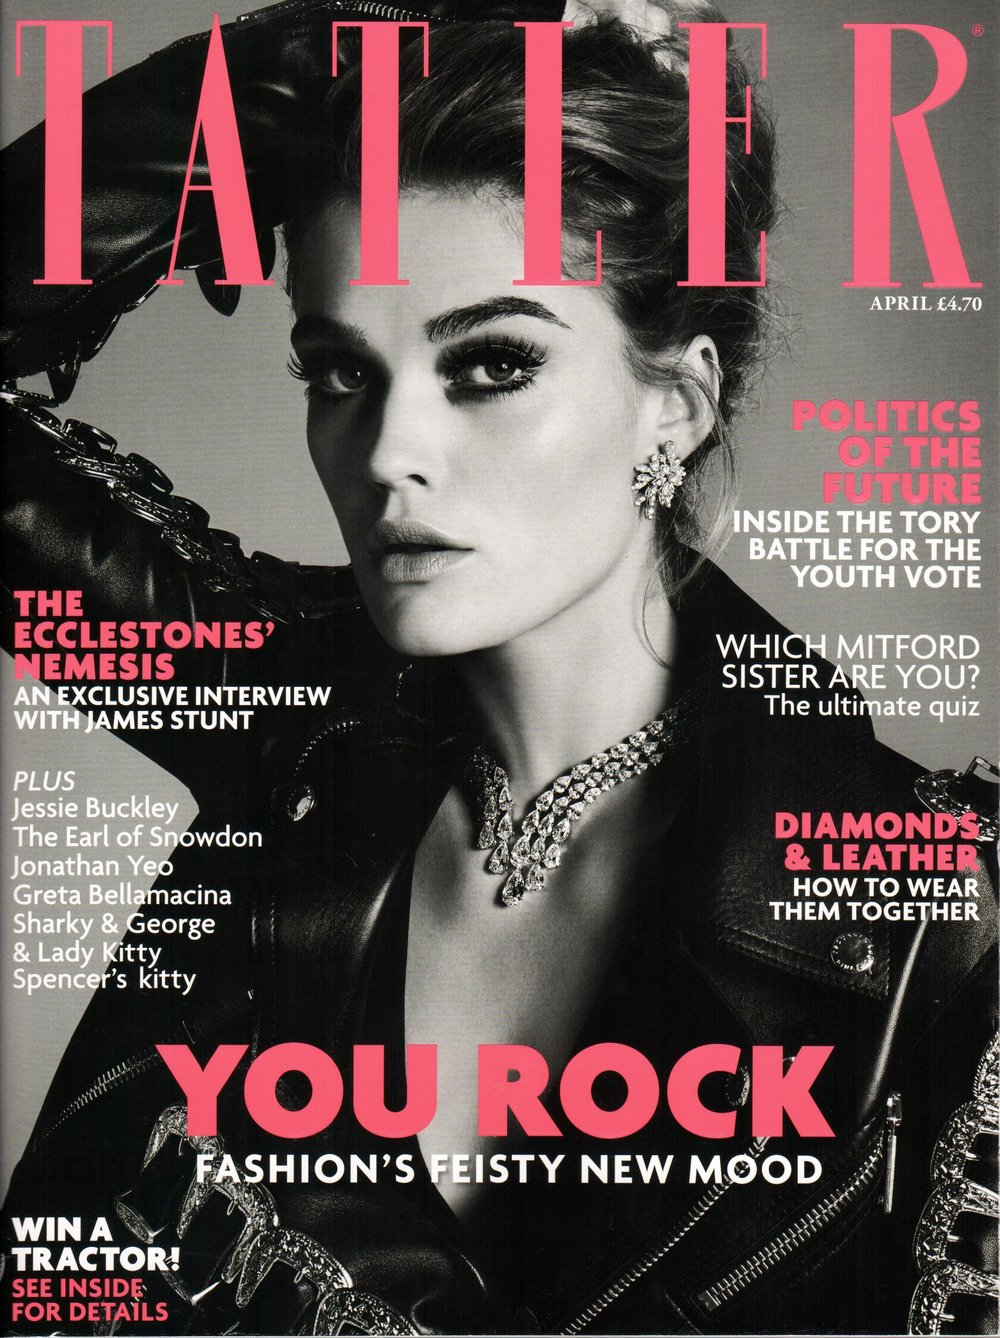 Tatler April 2018 cover.jpg